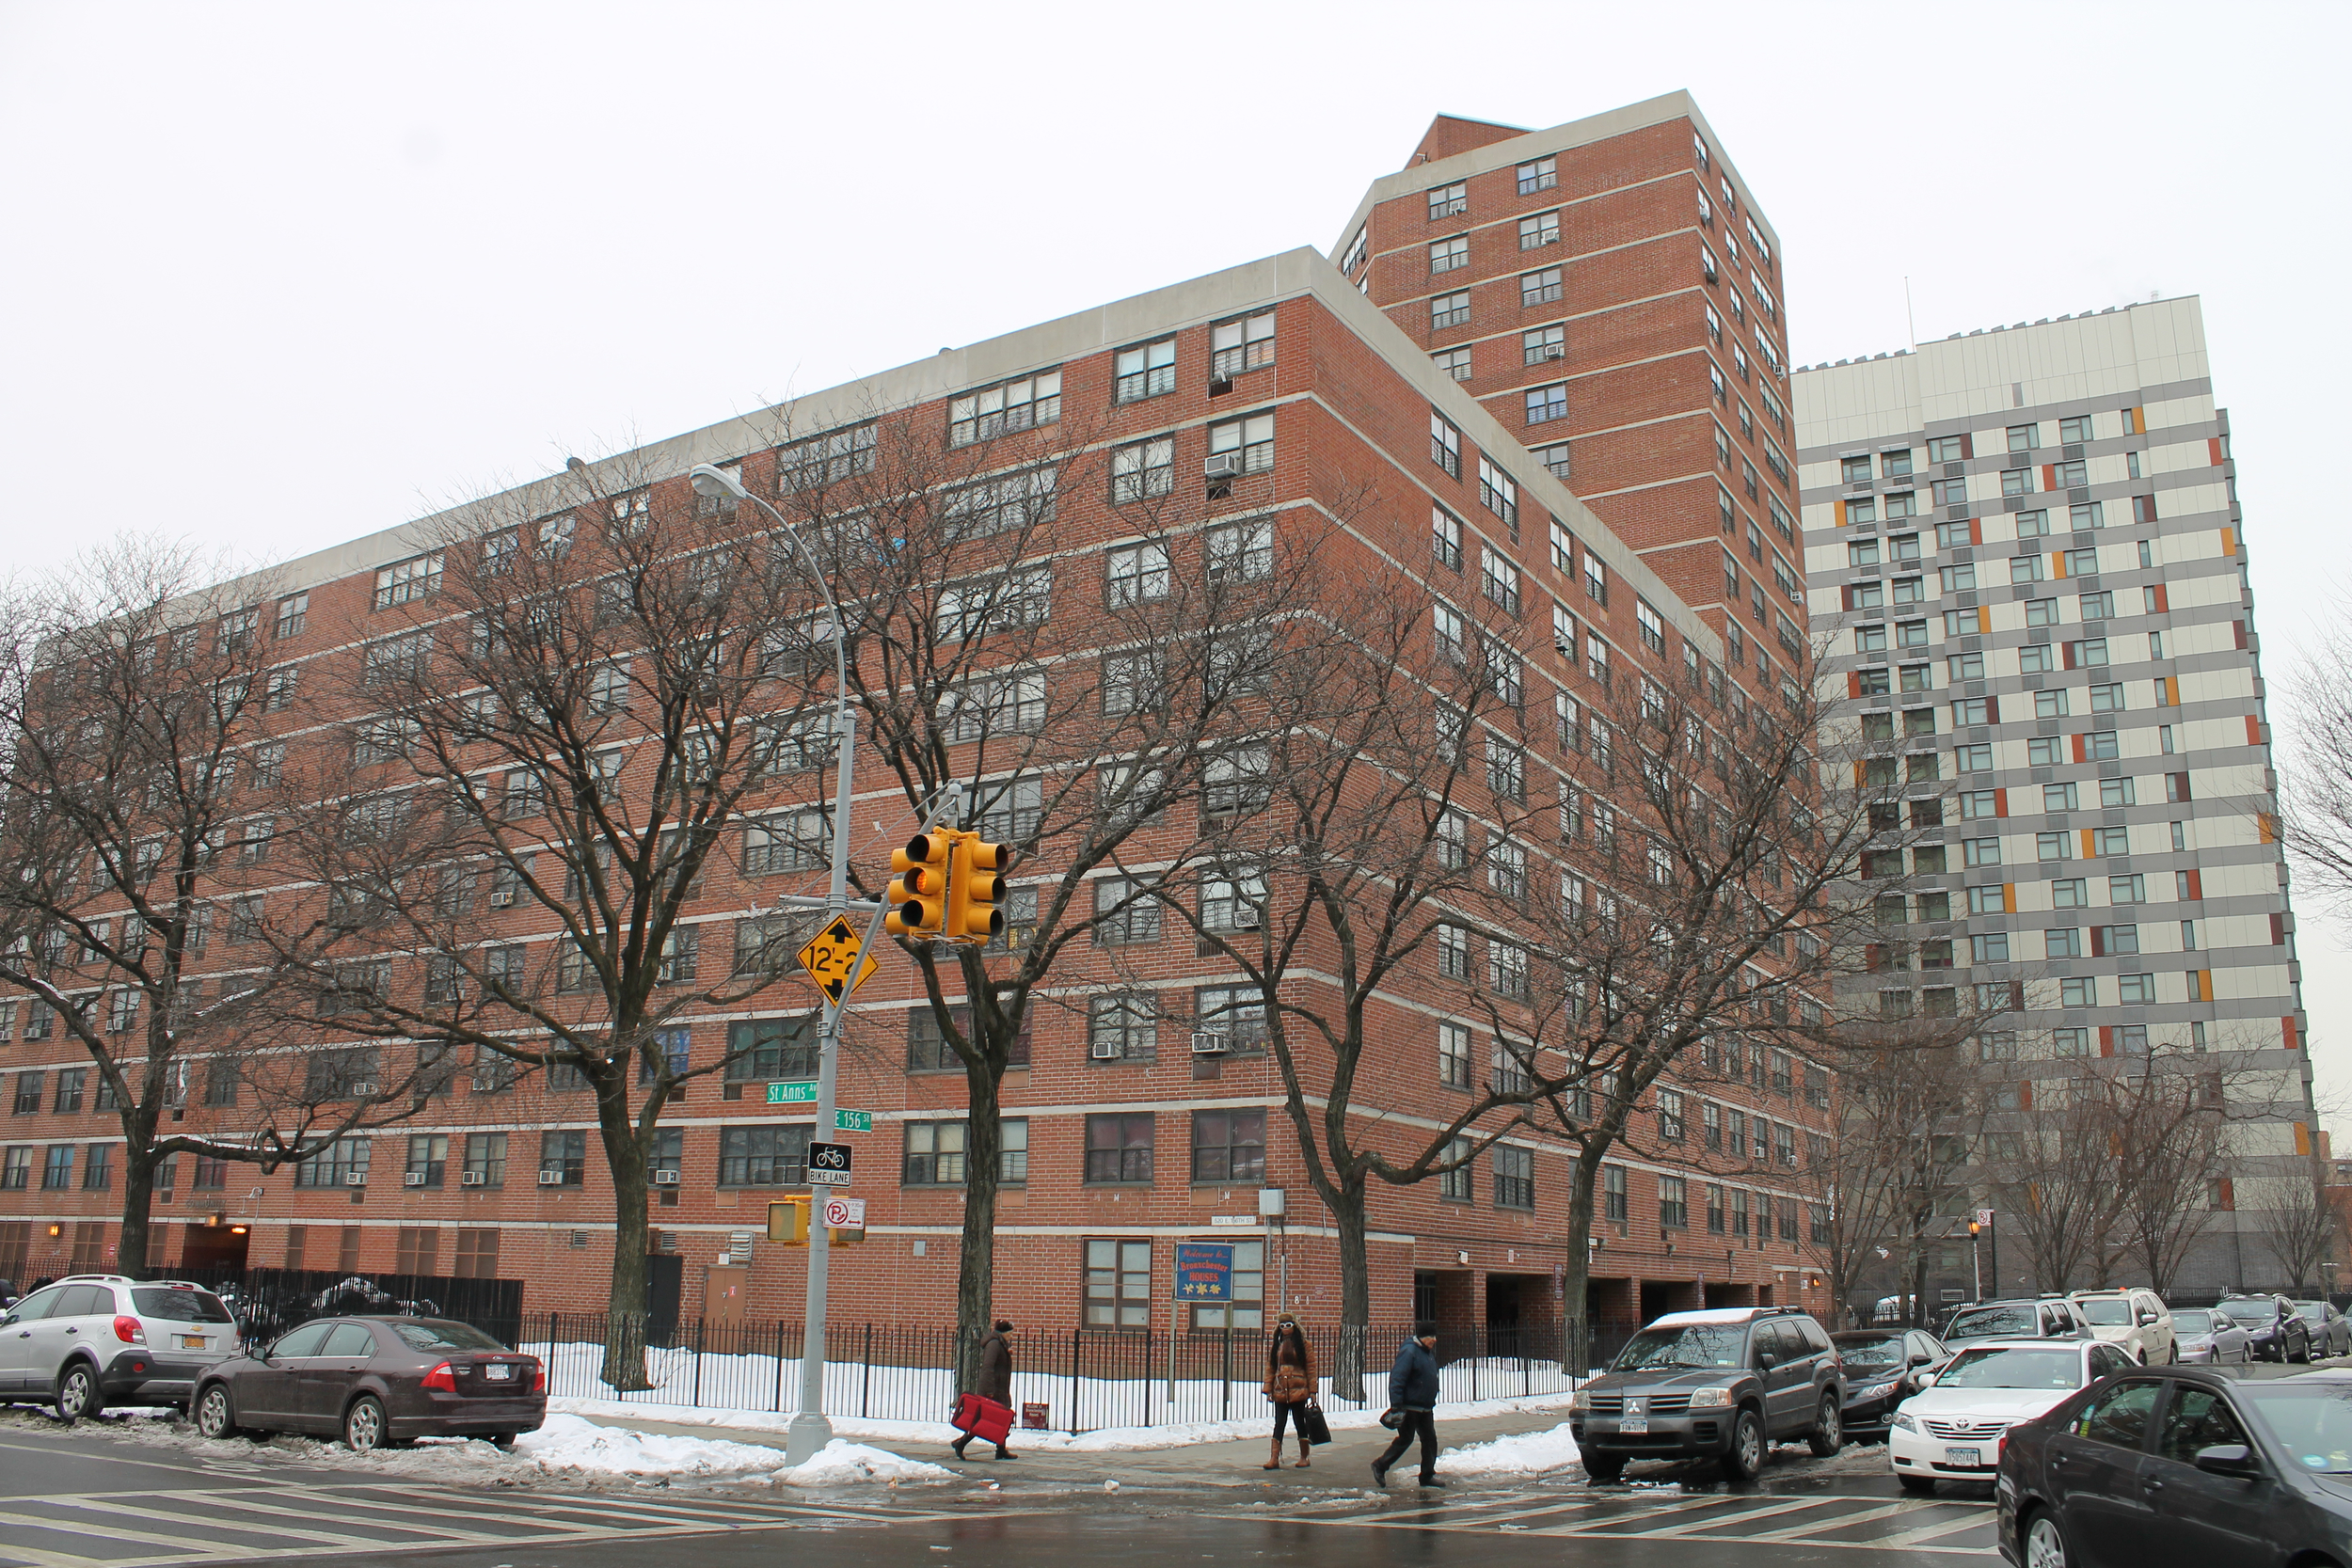 The Bronxchester, as seen on March 3, 2015, in the foreground. In the background is Via Verde, a relatively new housing development. Credit : Louis Flores